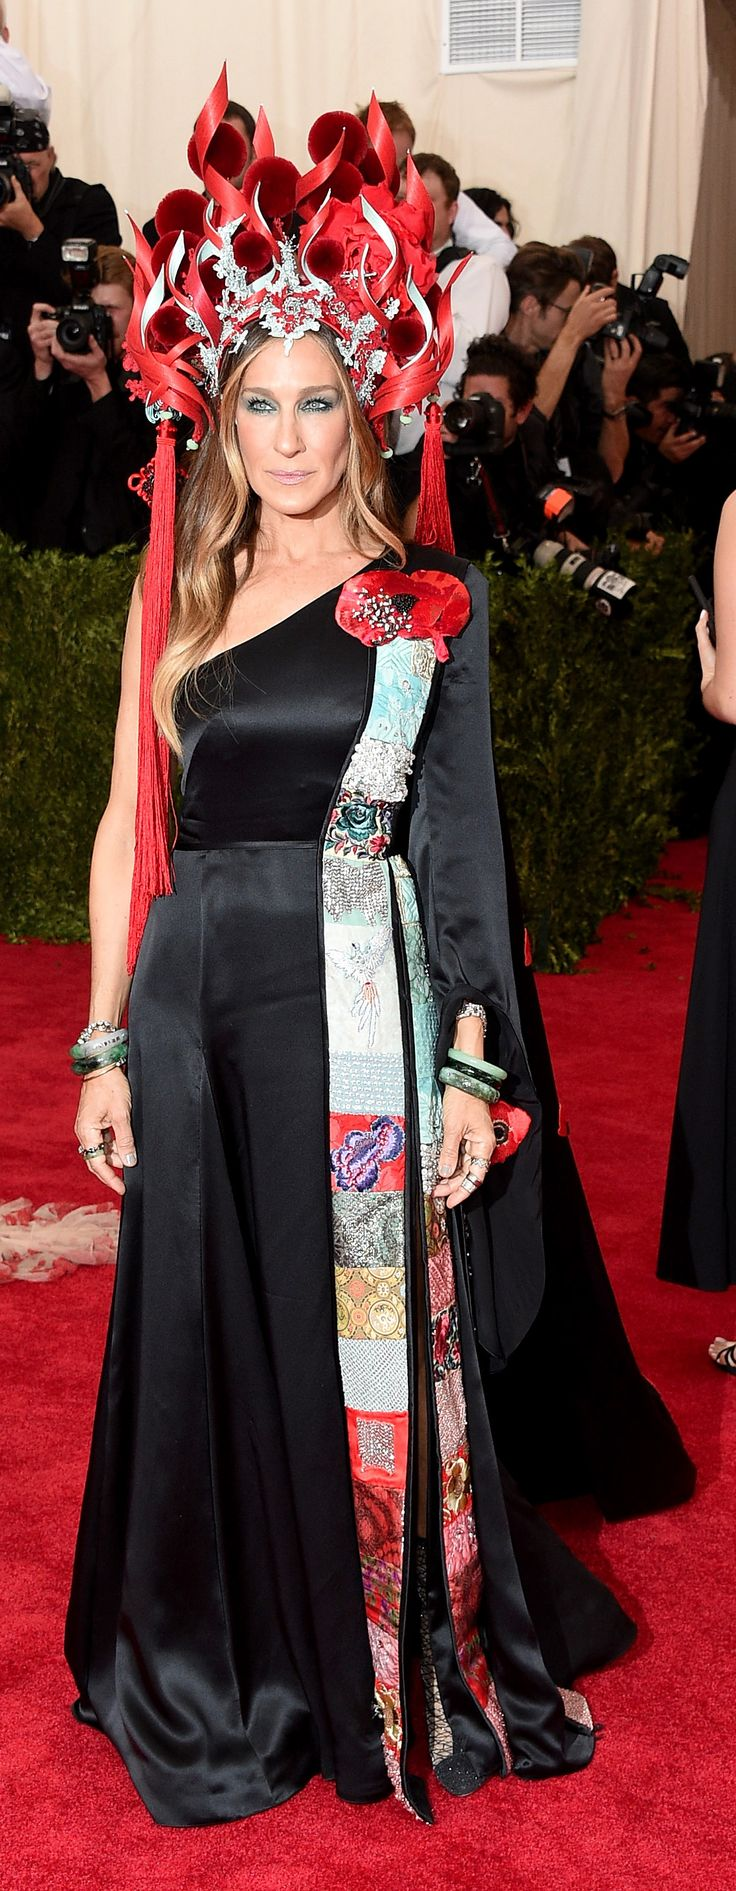 Sarah Jessica Parker Is on Fire at the Met Gala